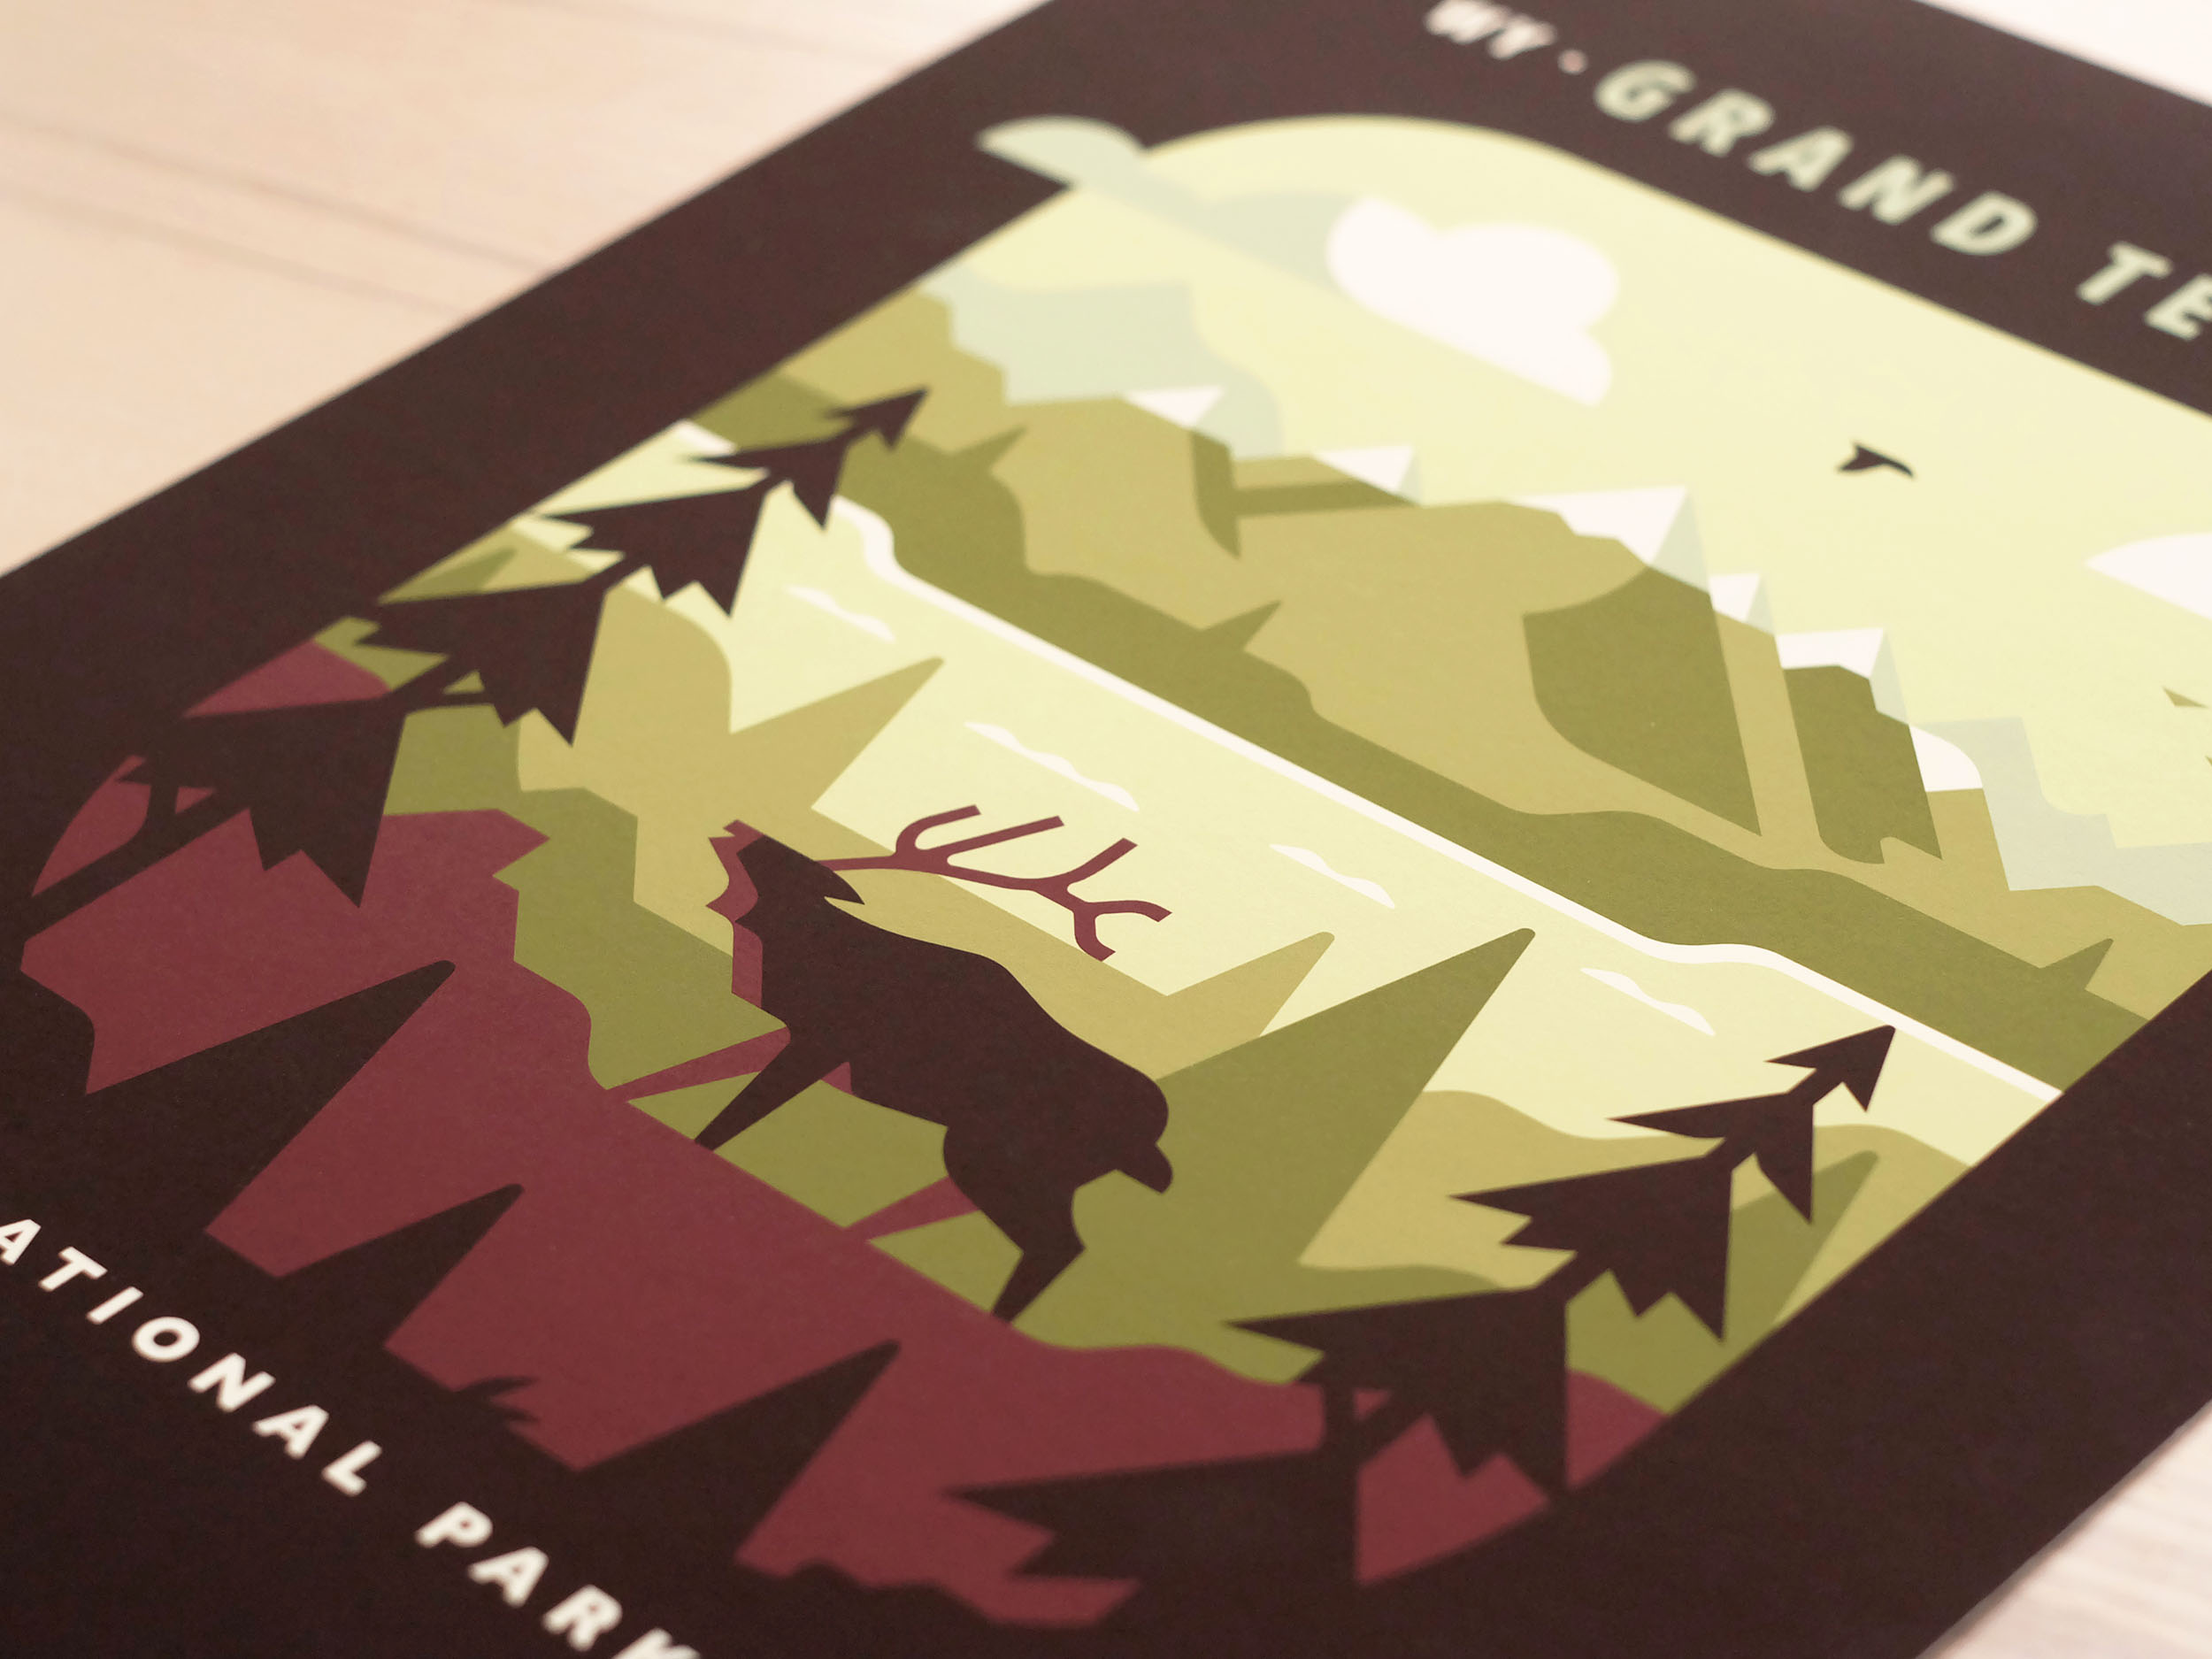 Grand Teton National Park poster photo by Matt Anderson and Canopy Design. Limited color illustration of mountains, lake, trees and an elk.